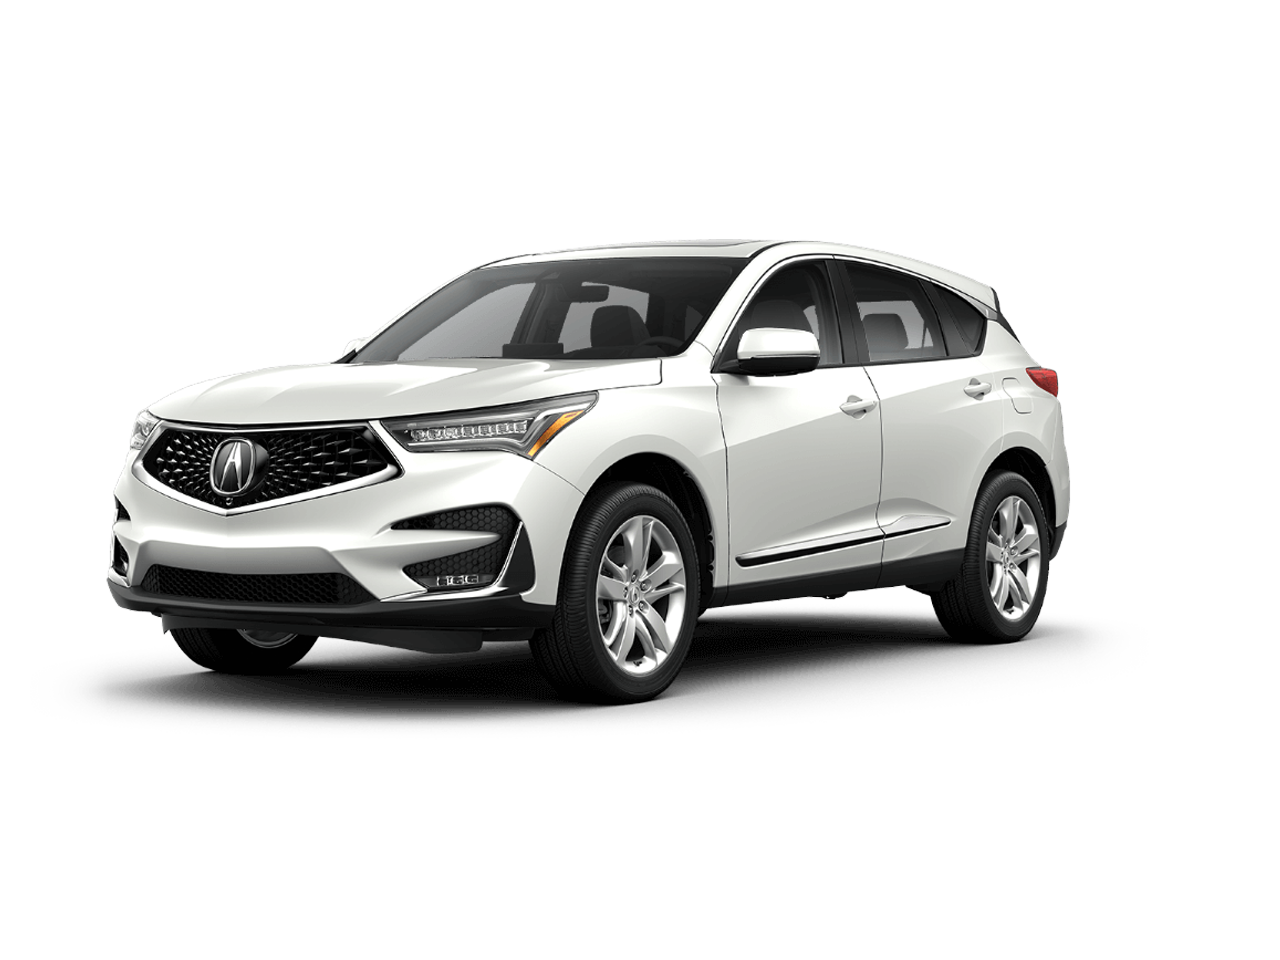 2020 RDX SH-AWD with Advance Package